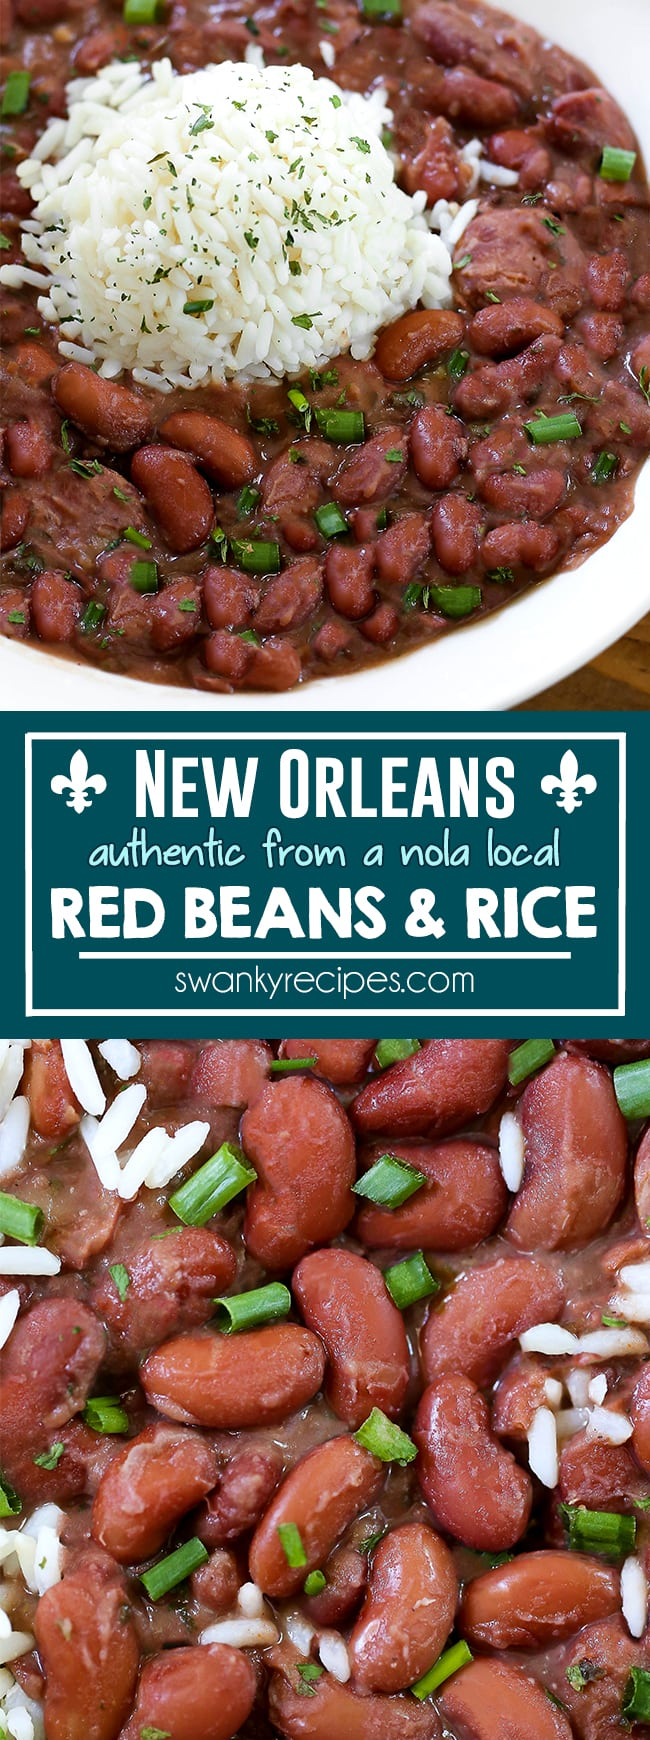 New Orleans Red Beans and Rice - A Louisiana classic on Mondays. You'll love this stove top red beans and rice recipe made with real New Orleans andouille sausage, and creole seasoning.